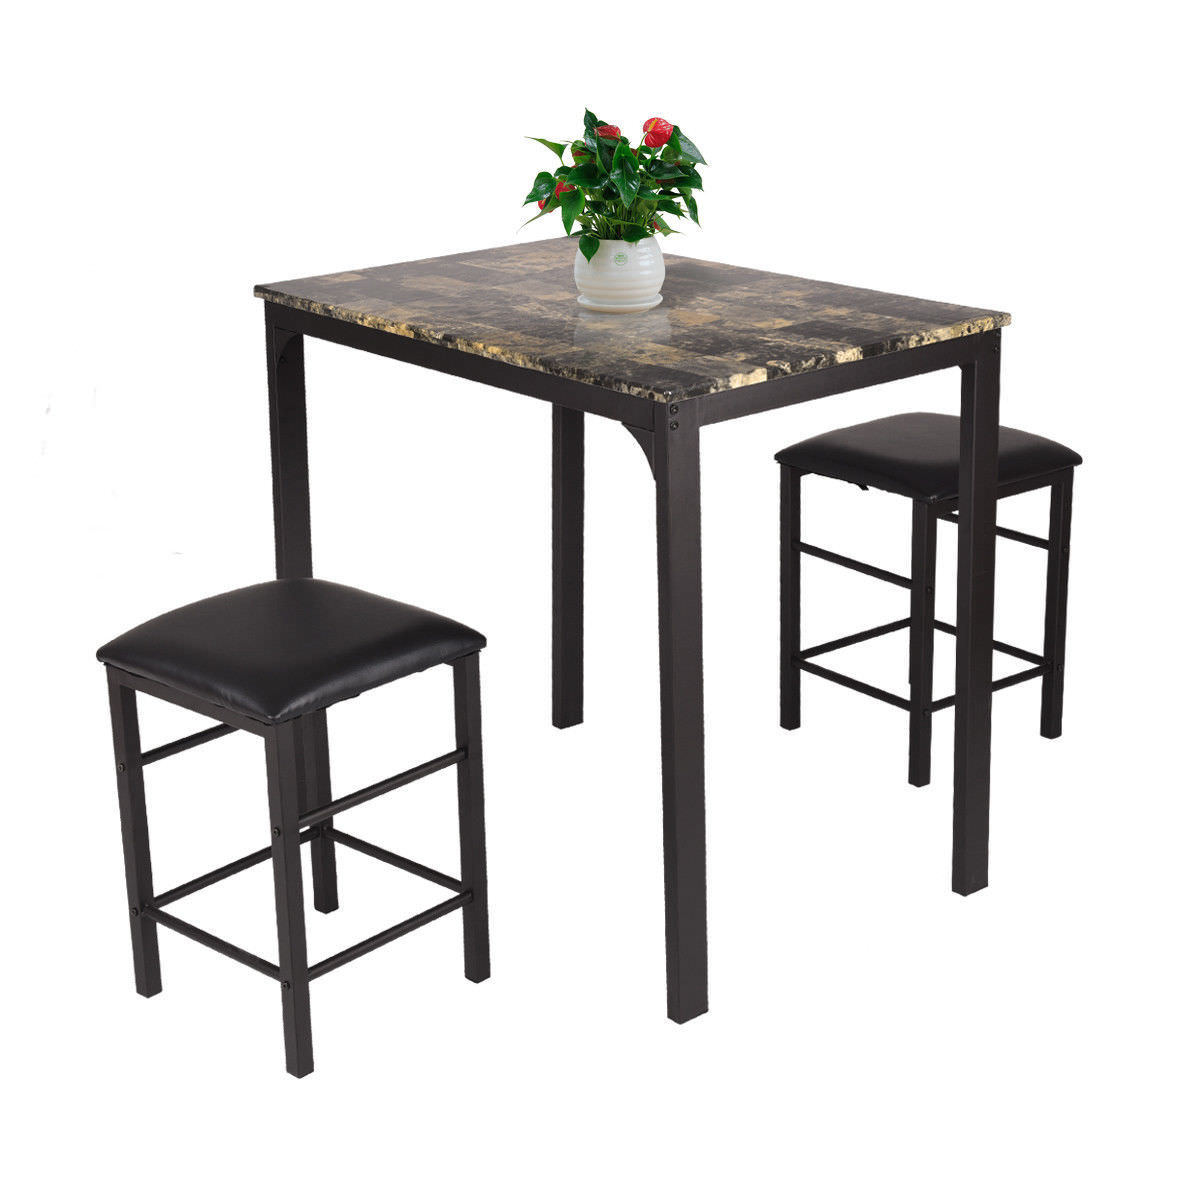 Costway 3 PCS Counter Height Dining Room Set Faux Marble Table 2 Chairs Kitchen Bar Furniture by Costway